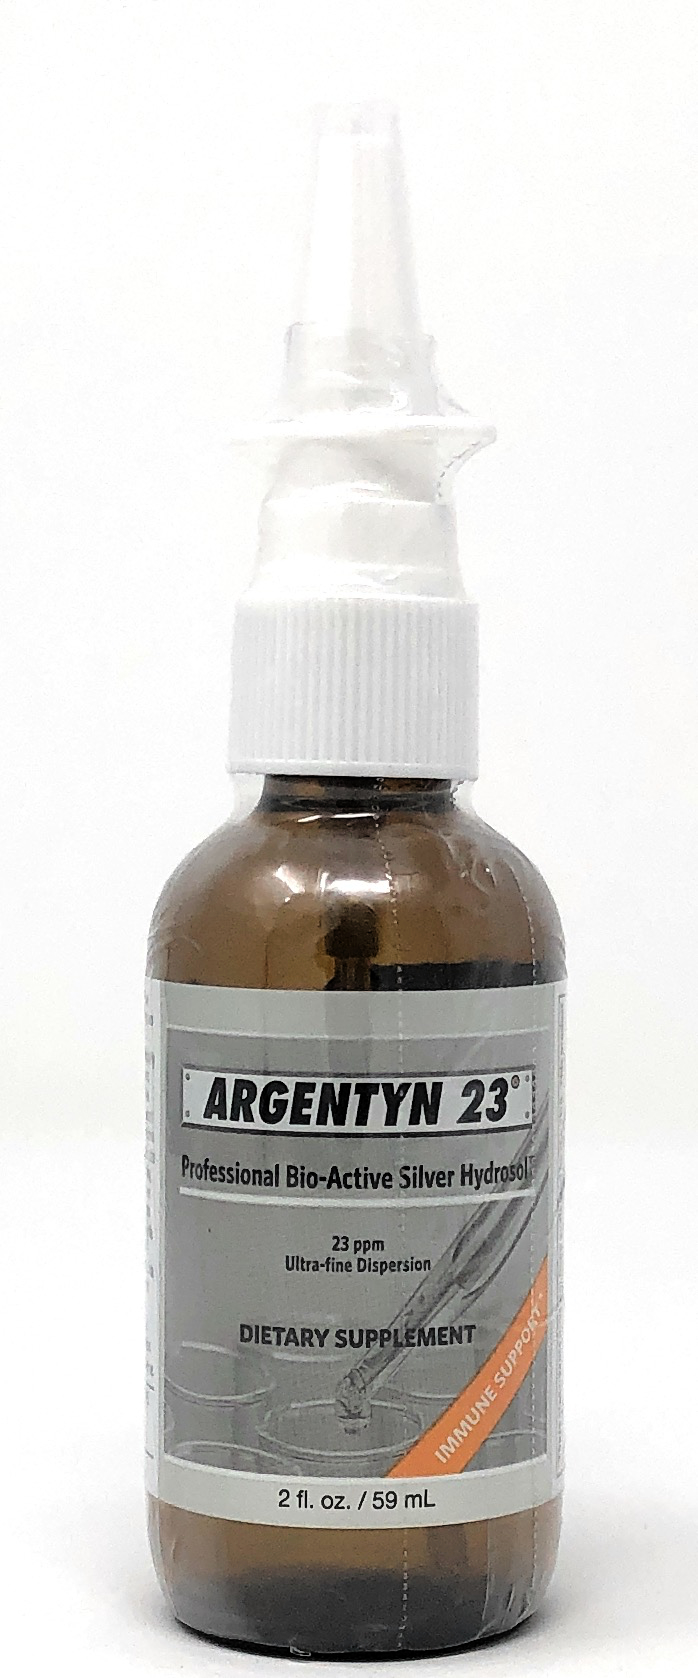 Allergy Research Group Argentyn 23(kolloiadales Silber) Nasenspray 59 ml vertikale Sprühflasche